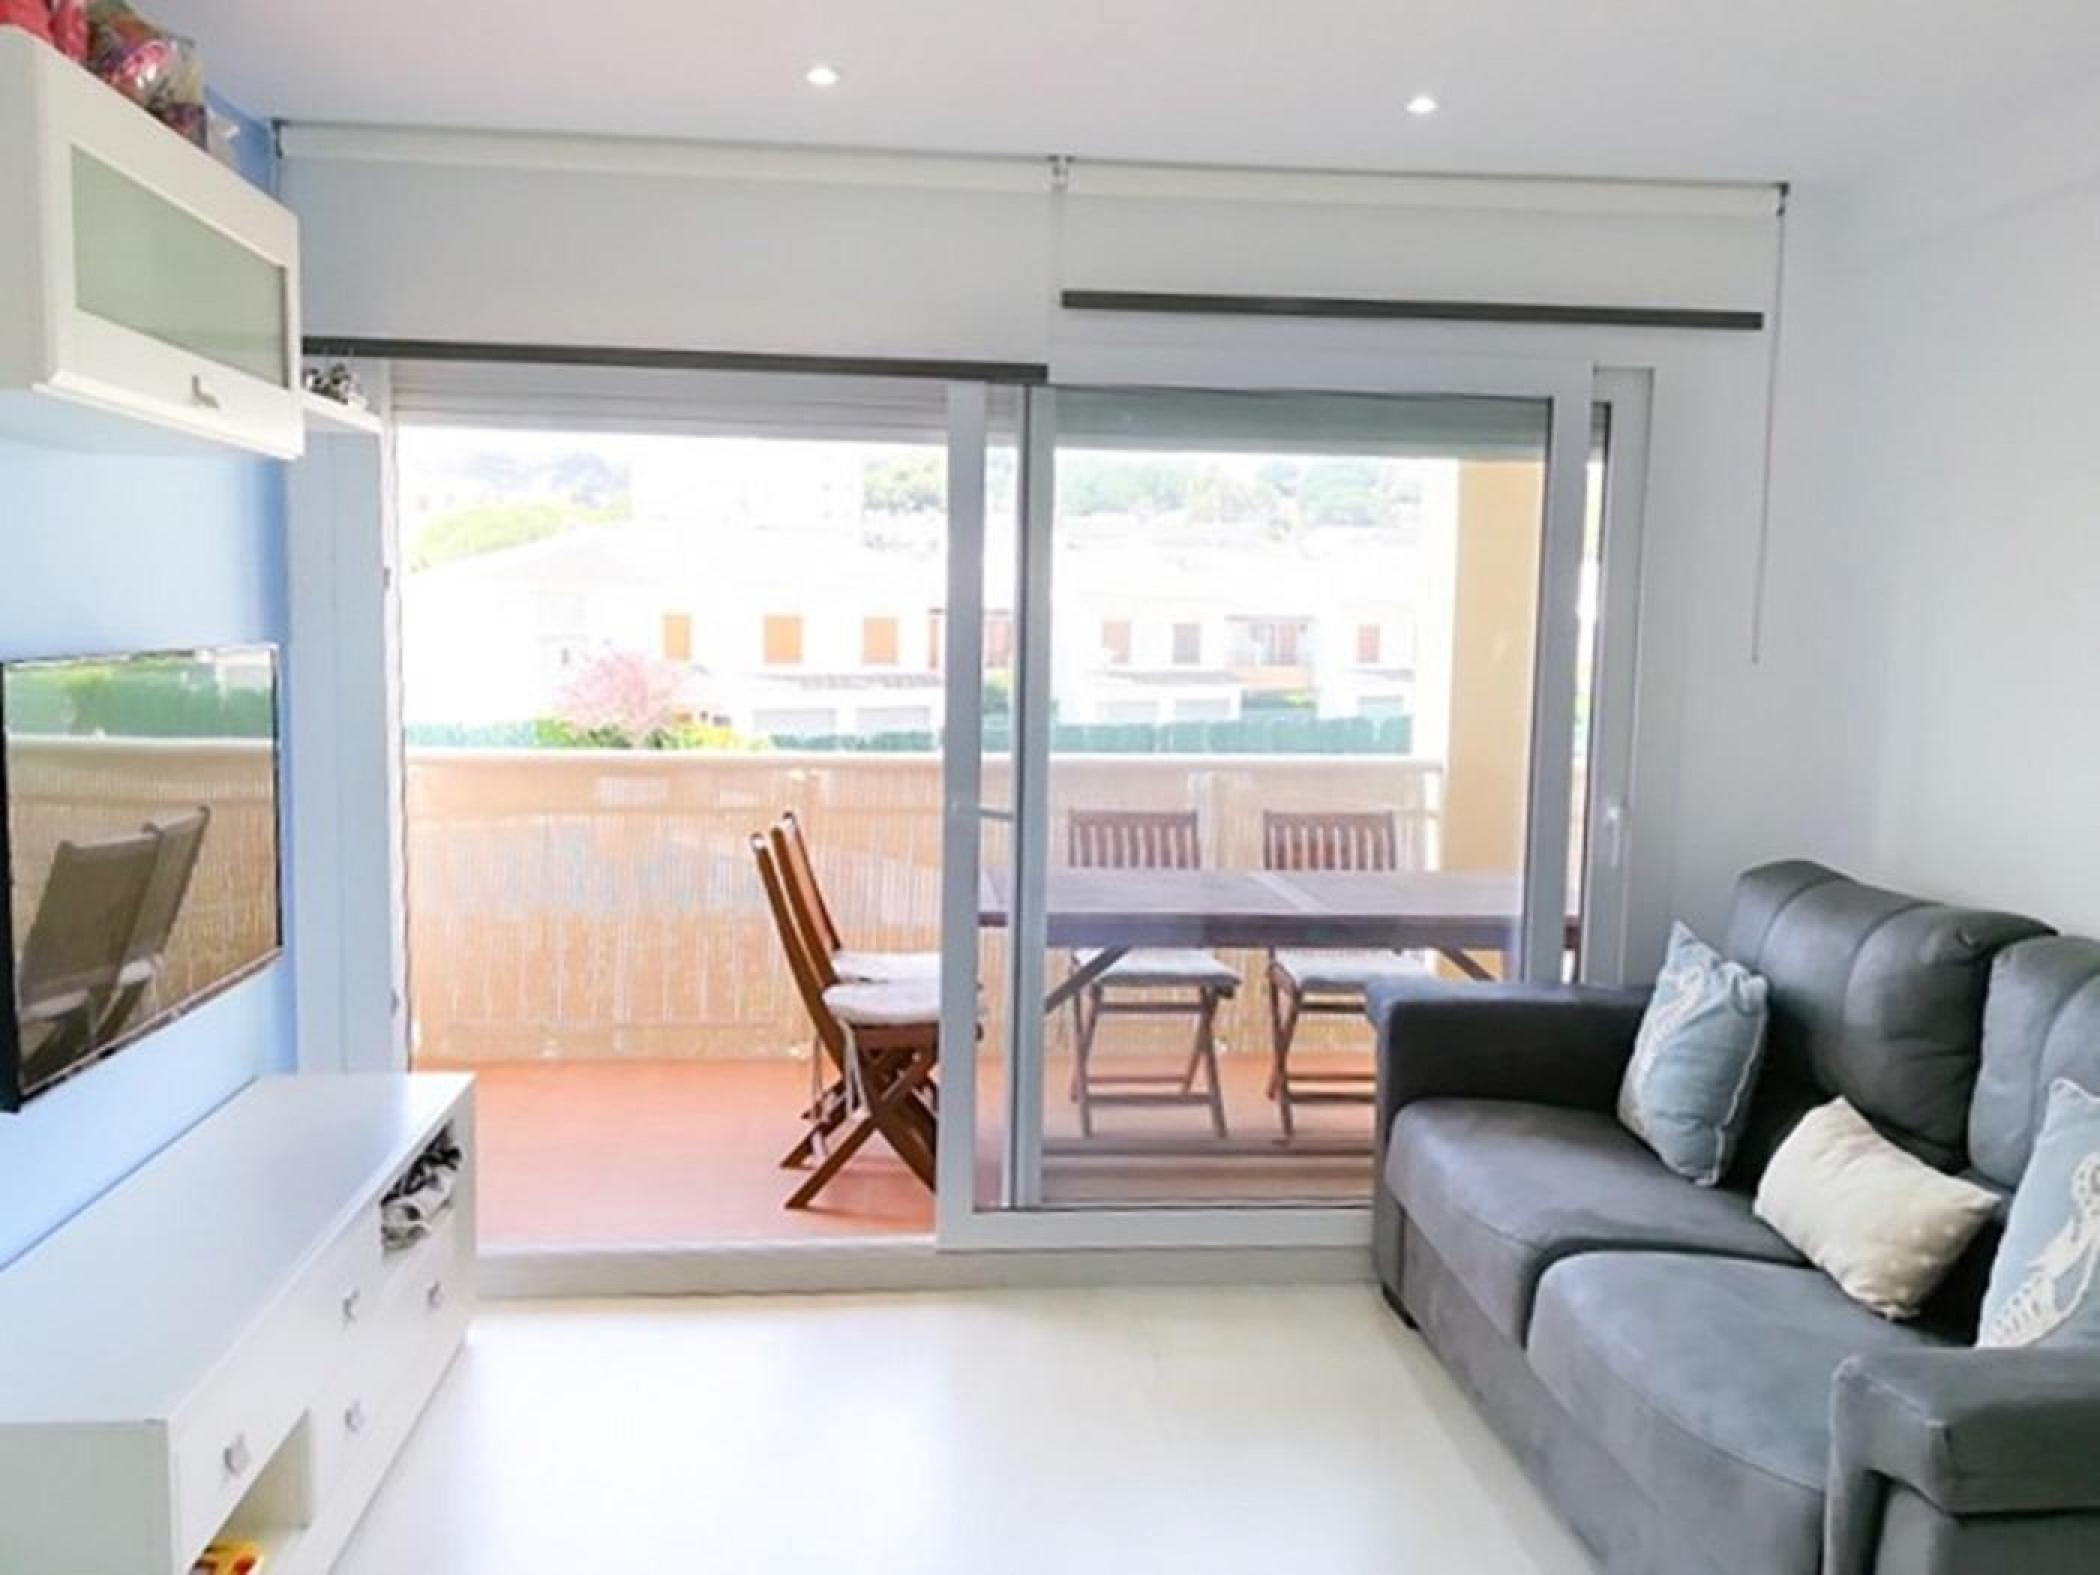 Rent Apartment with Swimming pool in Sant Antoni de Calonge - Complexe Canigó amb piscina i 1º linea de mar - 2